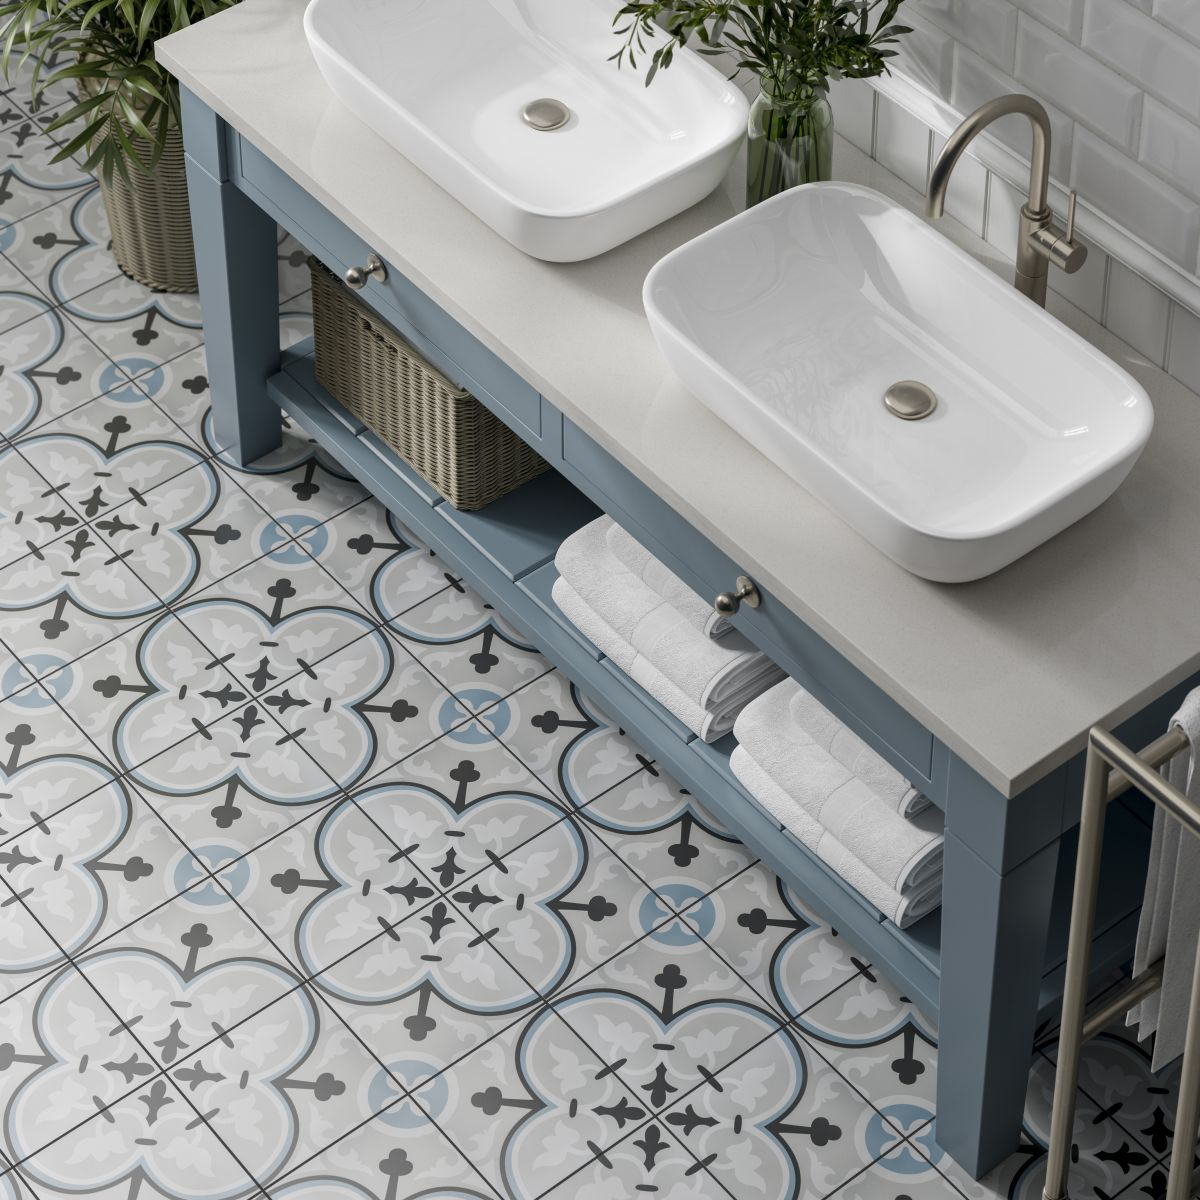 Strange How To Pick The Right Size Tiles For A Small Bathroom Real Home Interior And Landscaping Palasignezvosmurscom